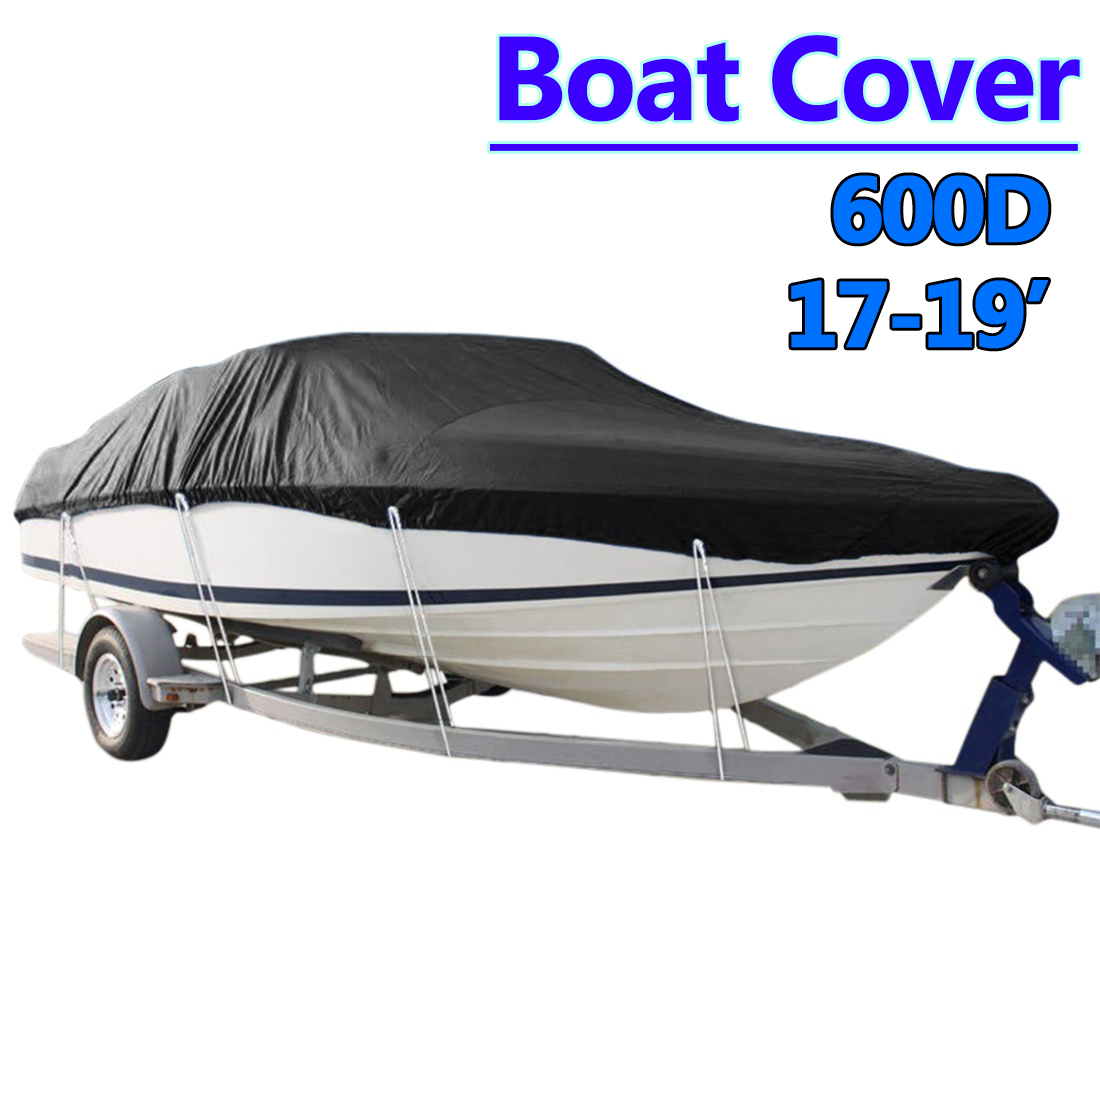 Heavy Duty 17ft-19ft Beam 600D Black Boat Cover 90inch Trailerable Marine Grade Boat Cover Waterproof UV Protected black heavy duty 14 16ft 600d beam 90inch trailerable marine grade boat cover for yacht boat waterproof anti uv boat accessories